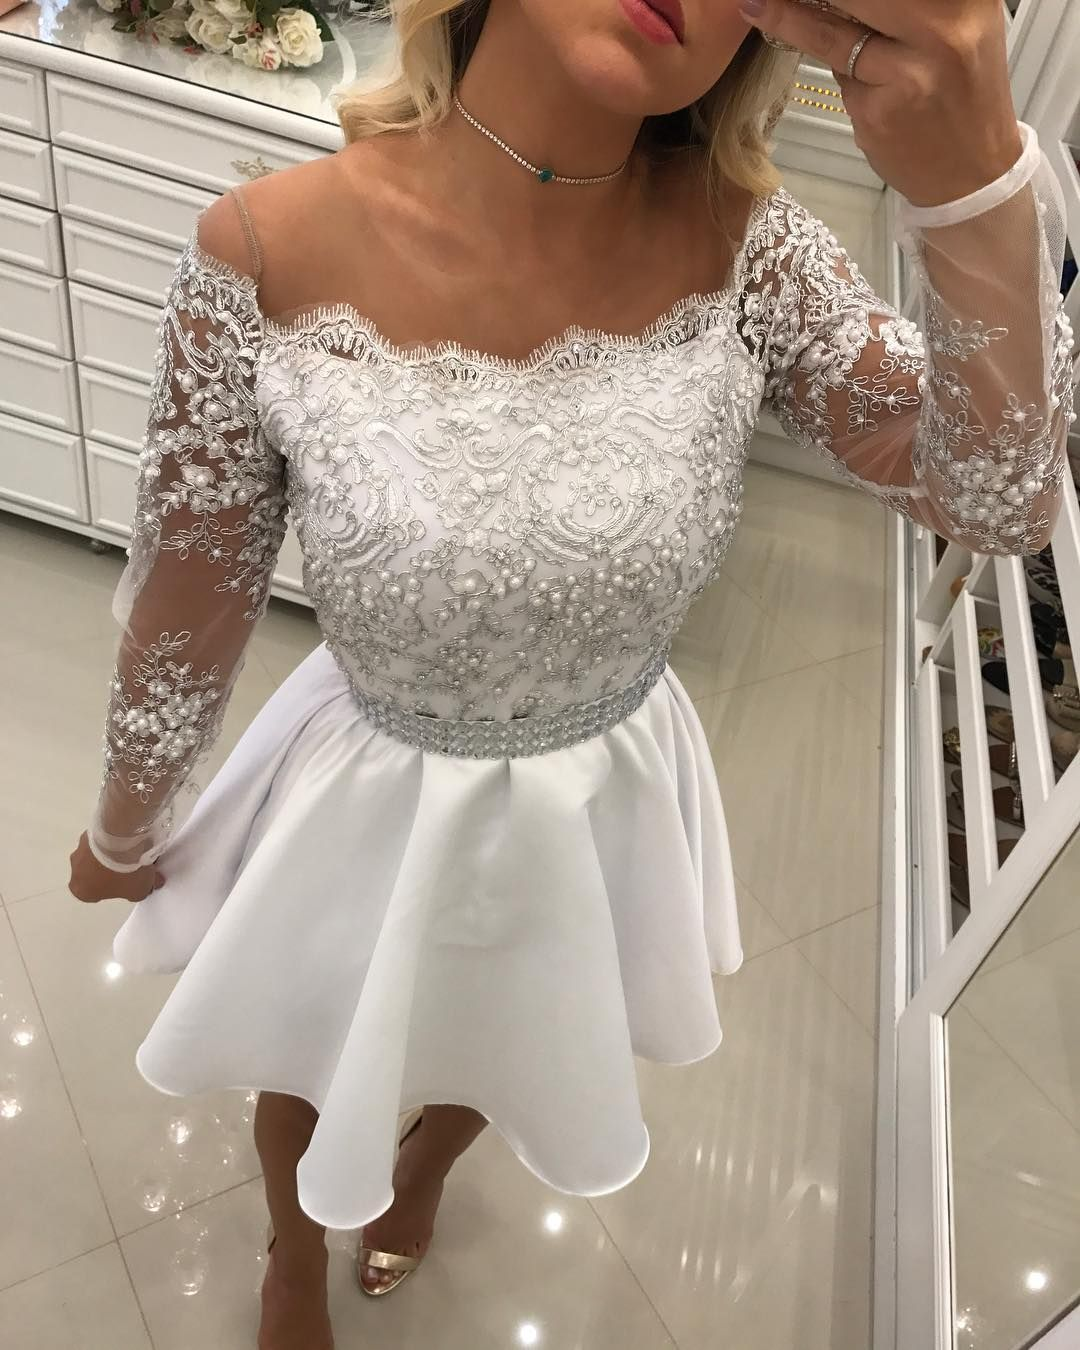 Fit And Flare Pearls Short Homecoming Dress With Full Sleeves In 2021 Homecoming Dresses Short Lace Homecoming Dresses White Homecoming Dresses [ 1350 x 1080 Pixel ]